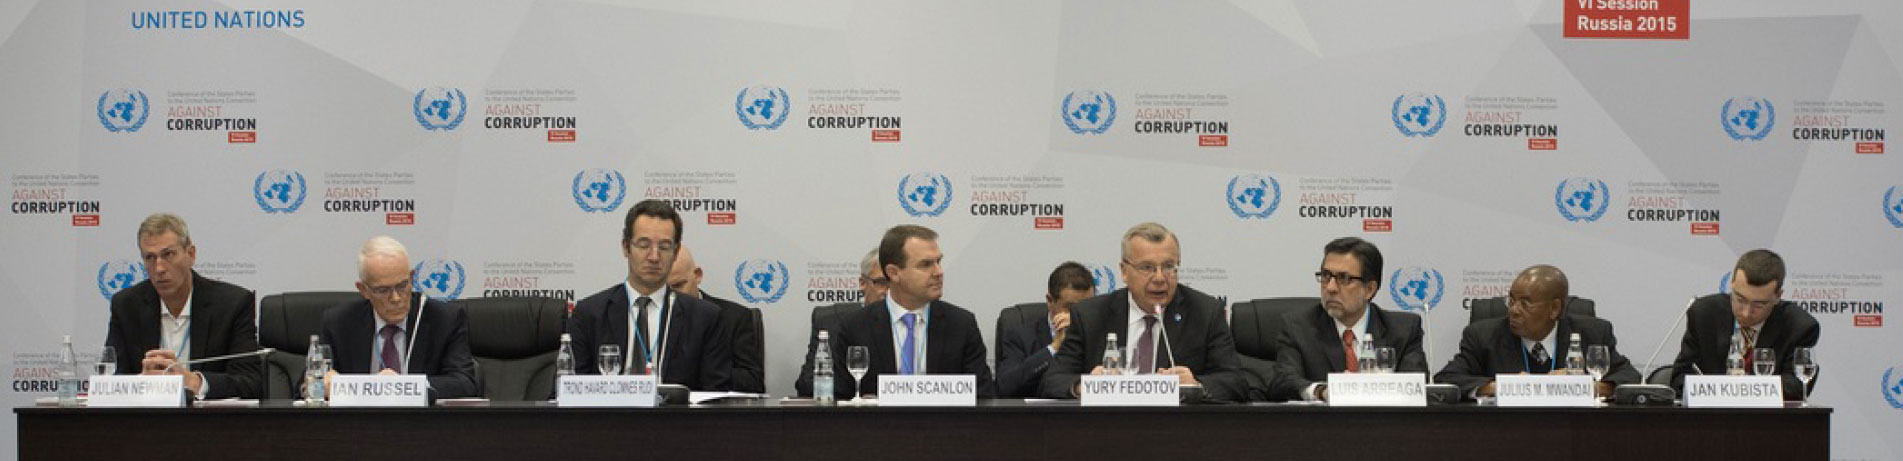 EIA Campaigns Director Julian Newman on a panel with key members of the UN Office on Drugs and Crime (UNODC) and CITES